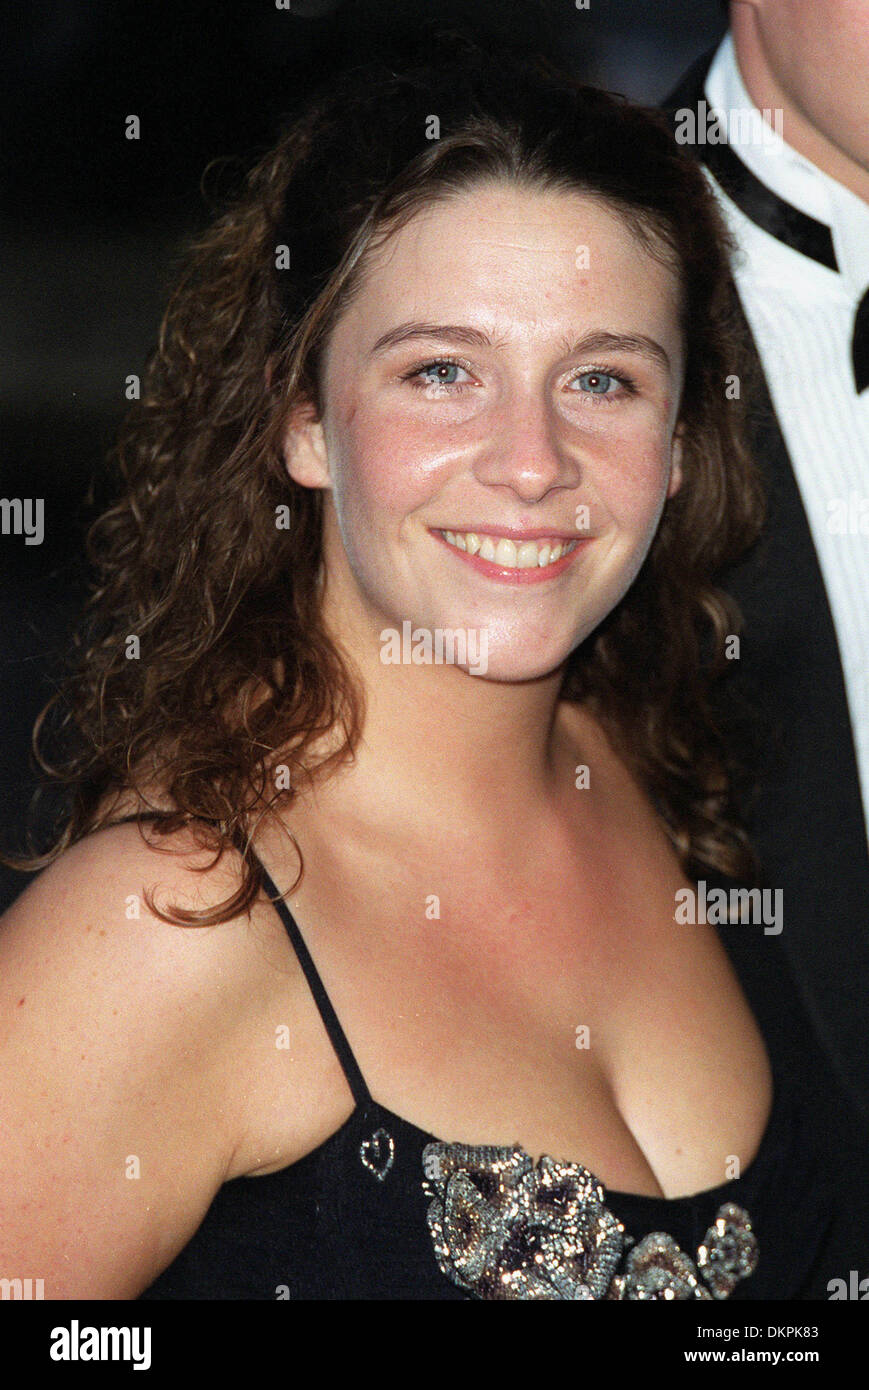 SUSAN MADDOCK.ACTRESS ''THE BILL''.LAND.ROYAL ALBERT HALL, LONDON, ENG.23/10/2001.BM16F11 - Stock Image